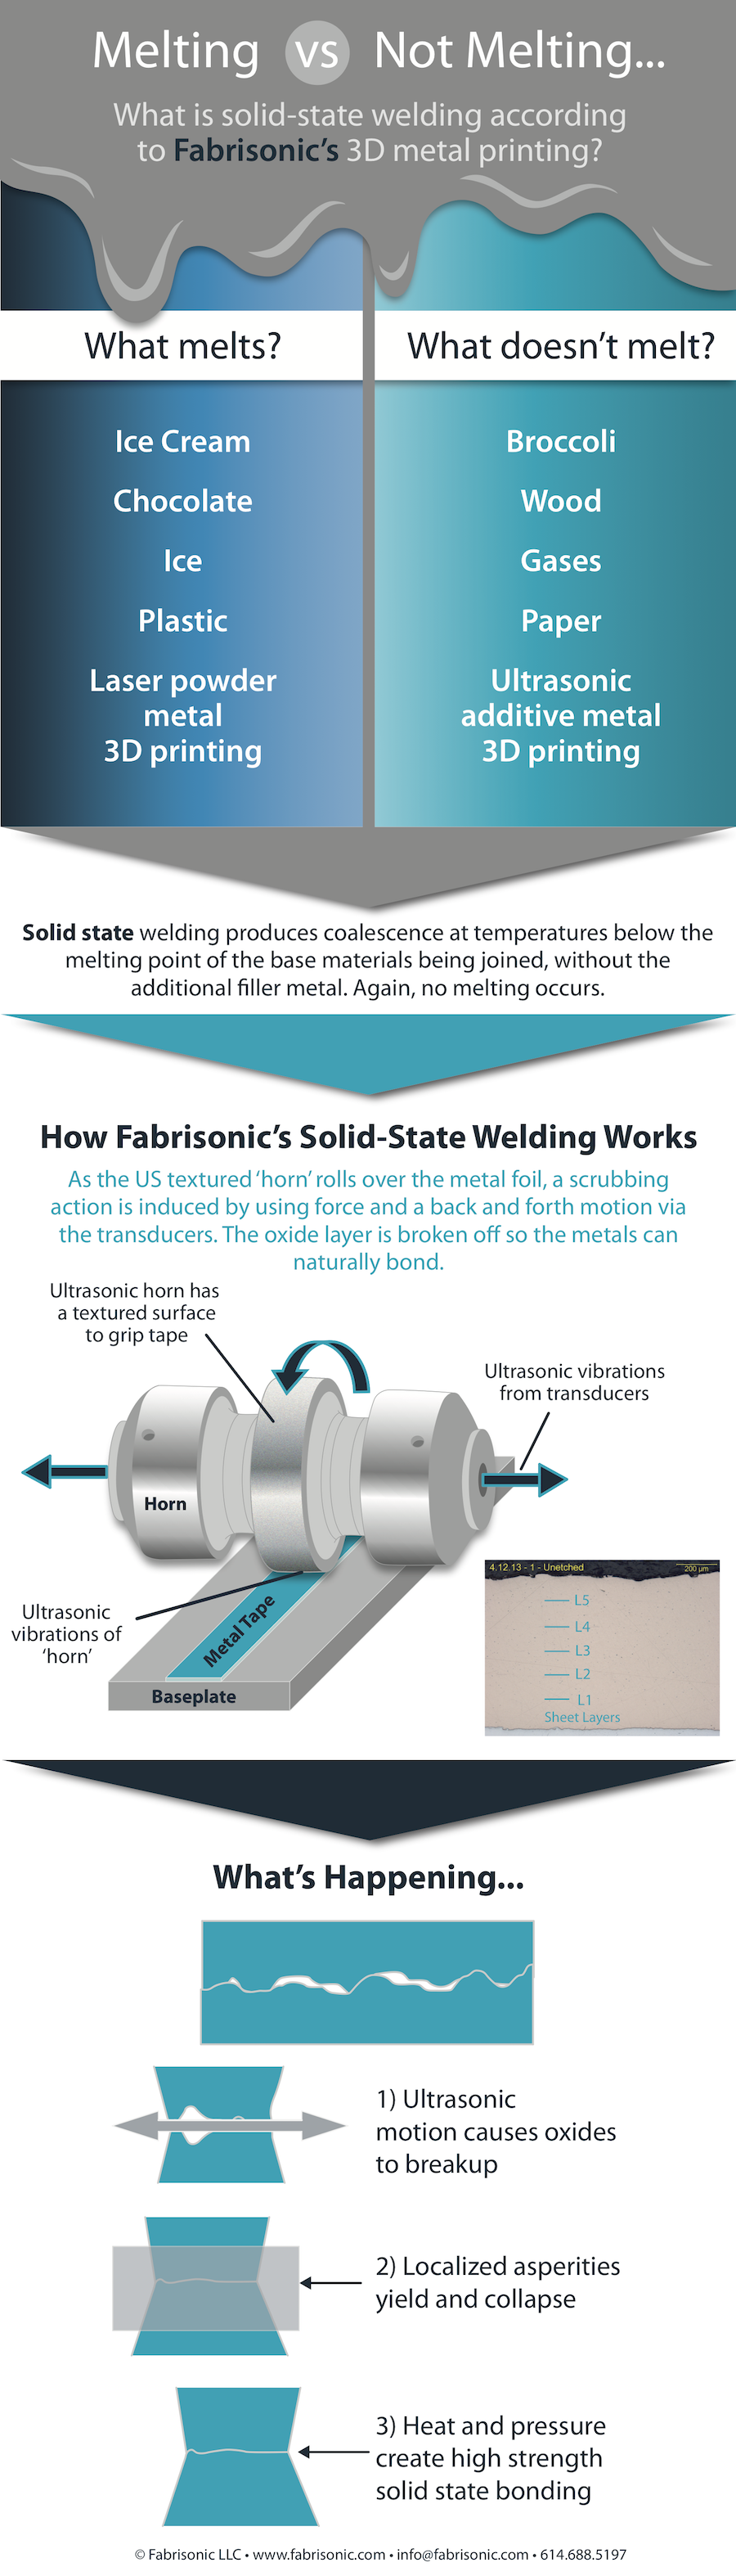 Technology Fabrisonic 3d Printing Without Melting Ultrasonic Welding Diagram So How Does It Work